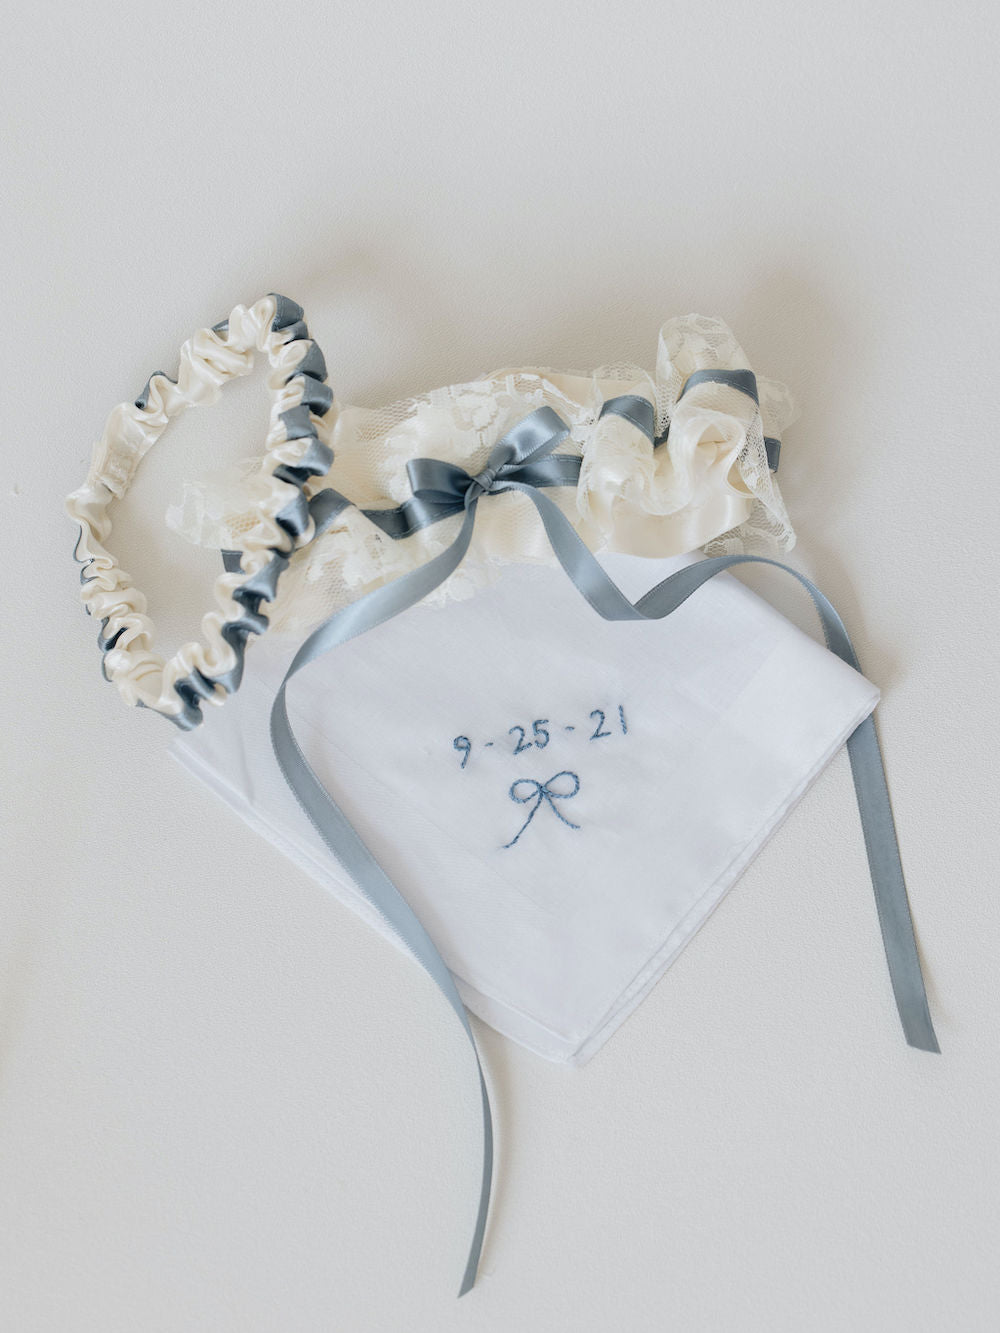 wedding garter set and handkerchief personalized with embroidery, handmade bridal heirlooms by The Garter Girl